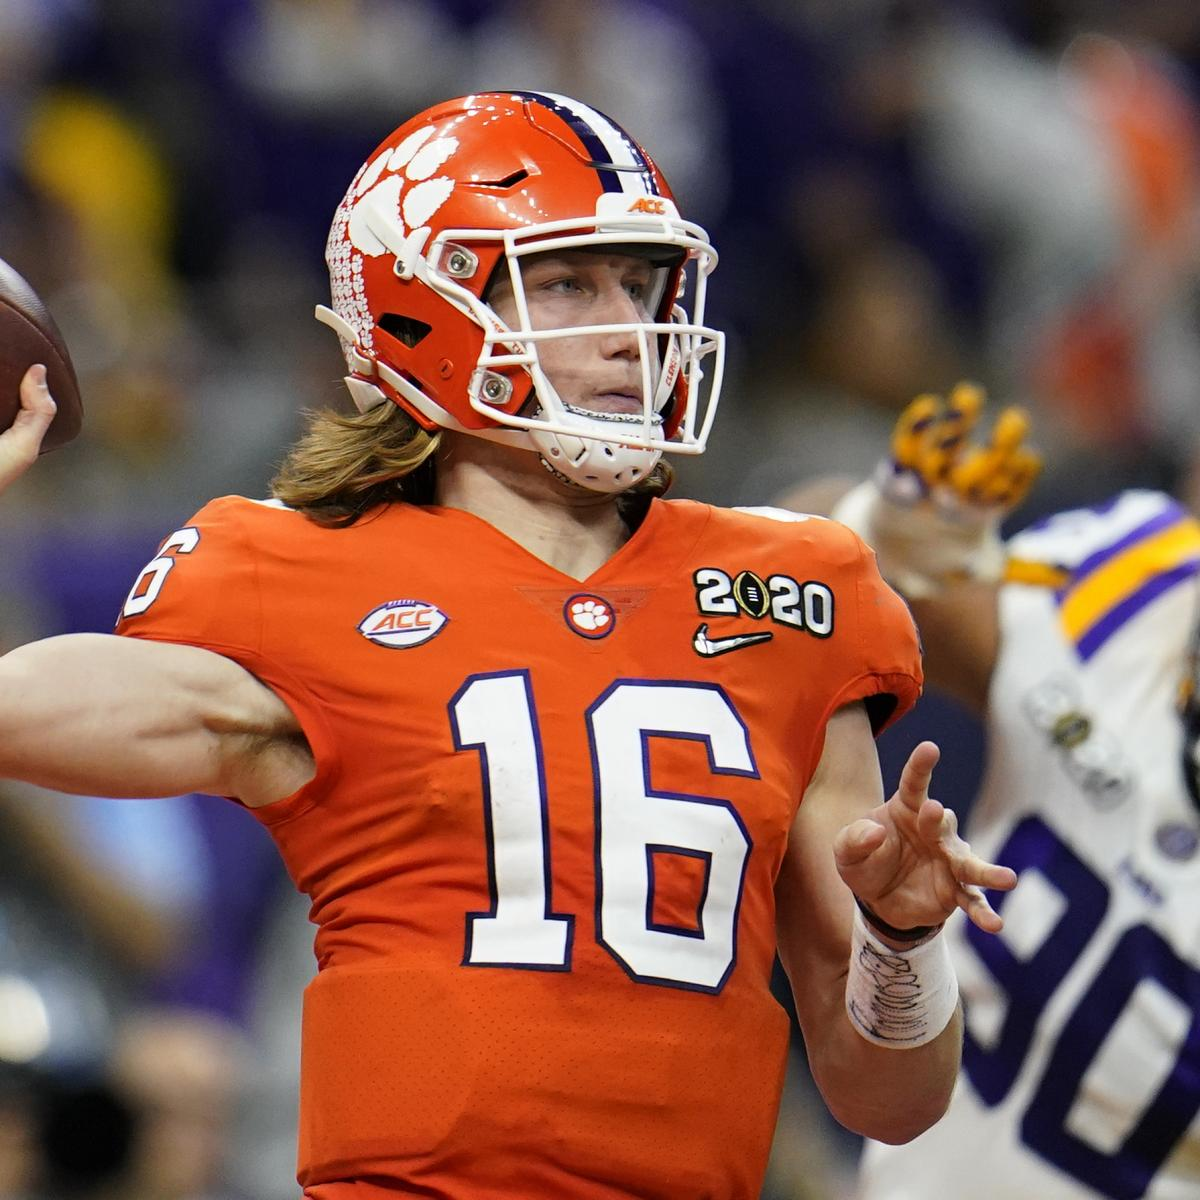 Matt Miller's Scouting Notebook: What I'm Hearing About 2021 NFL Draft's Top 10